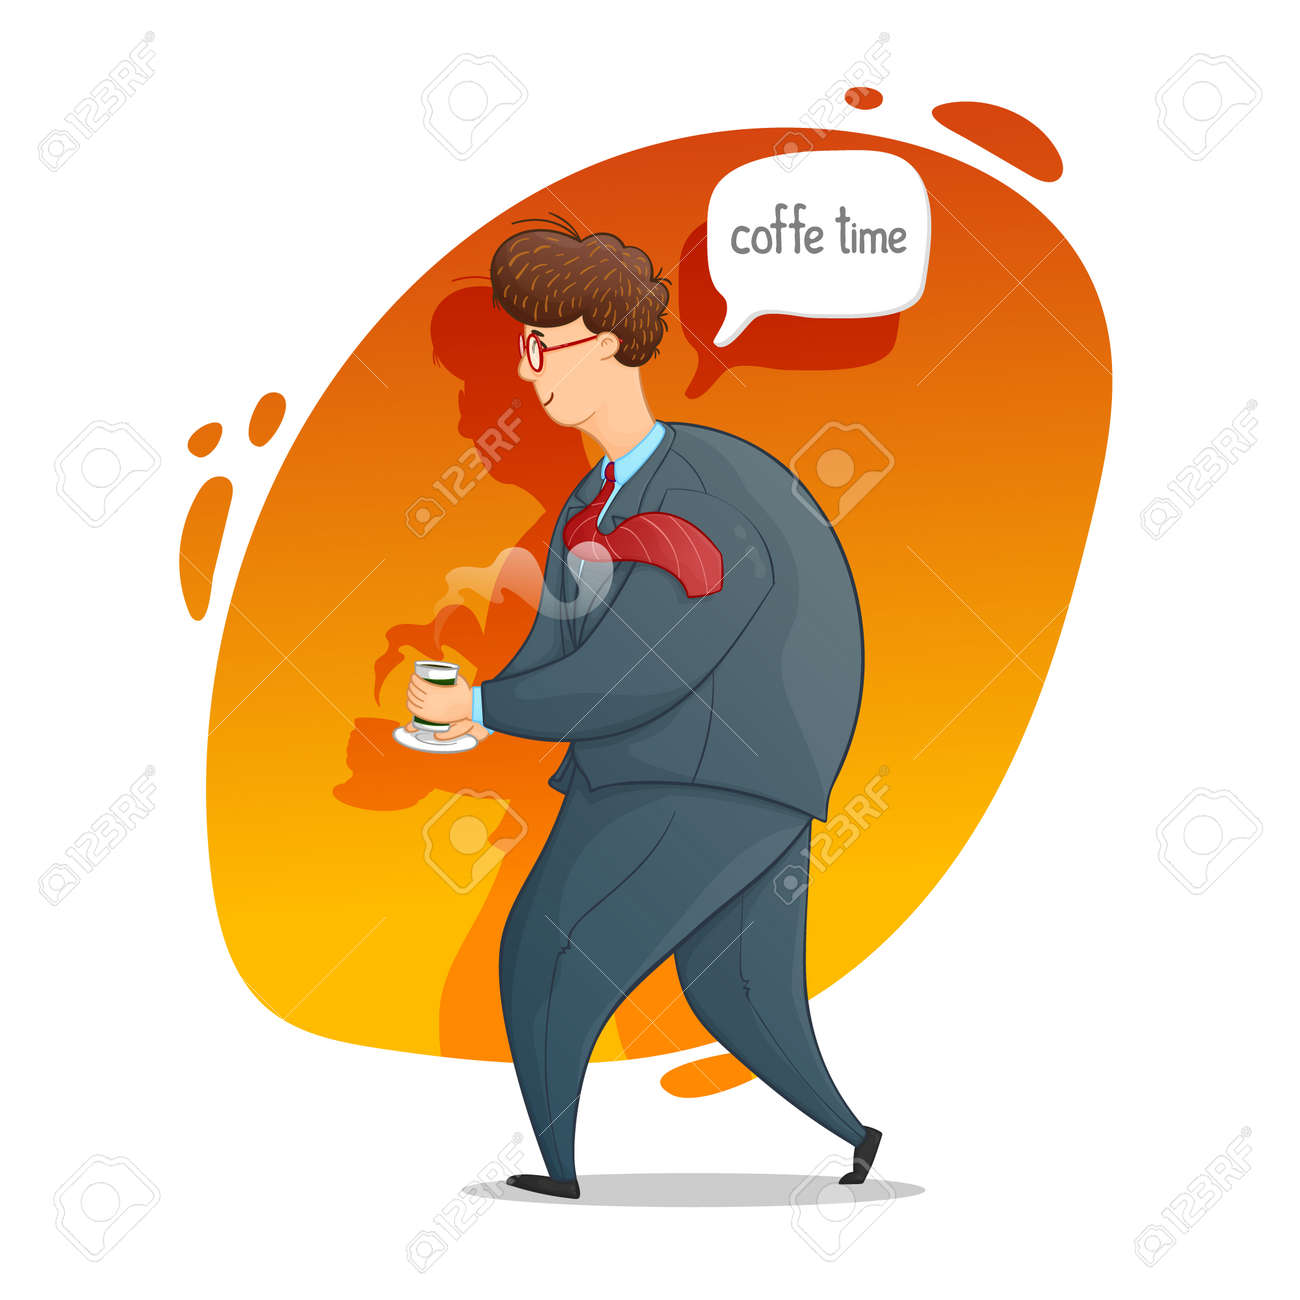 The guy with a cup of coffee. Coffee time. Cartoon contour drawing in a vector. - 159519999